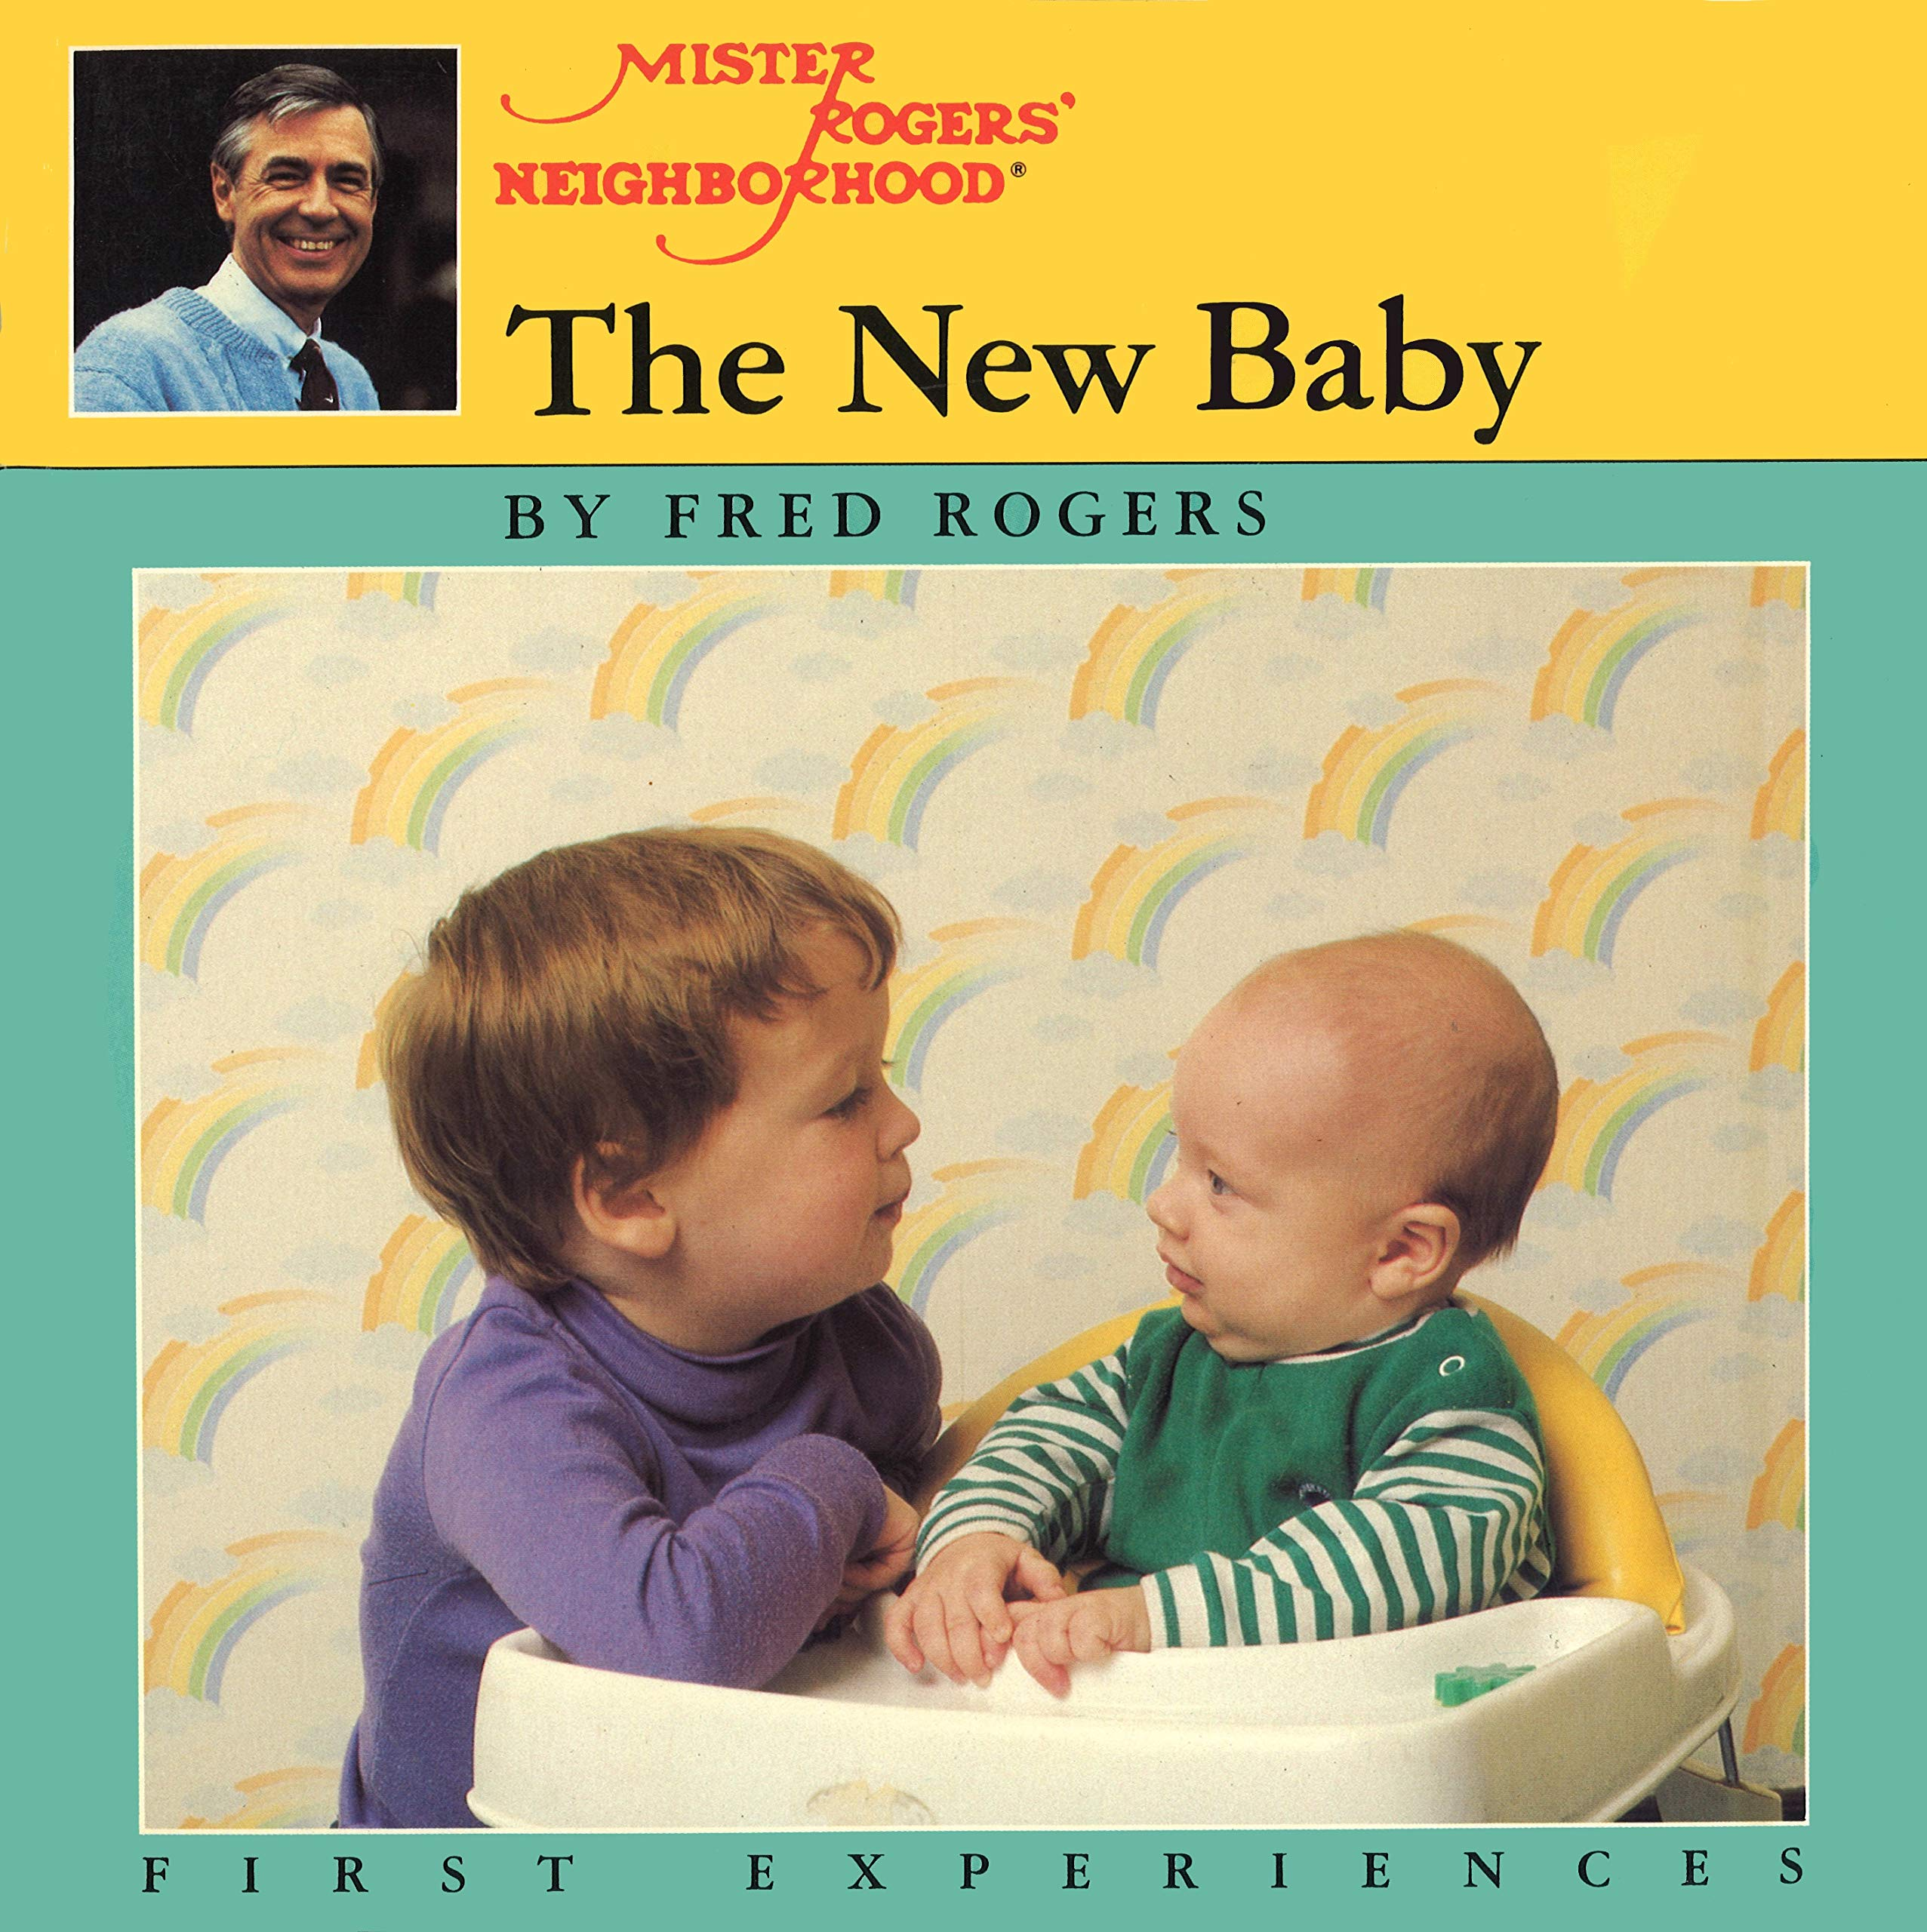 The New Baby Mr Rogers Rogers Fred 9780698113664 Amazon Com Books